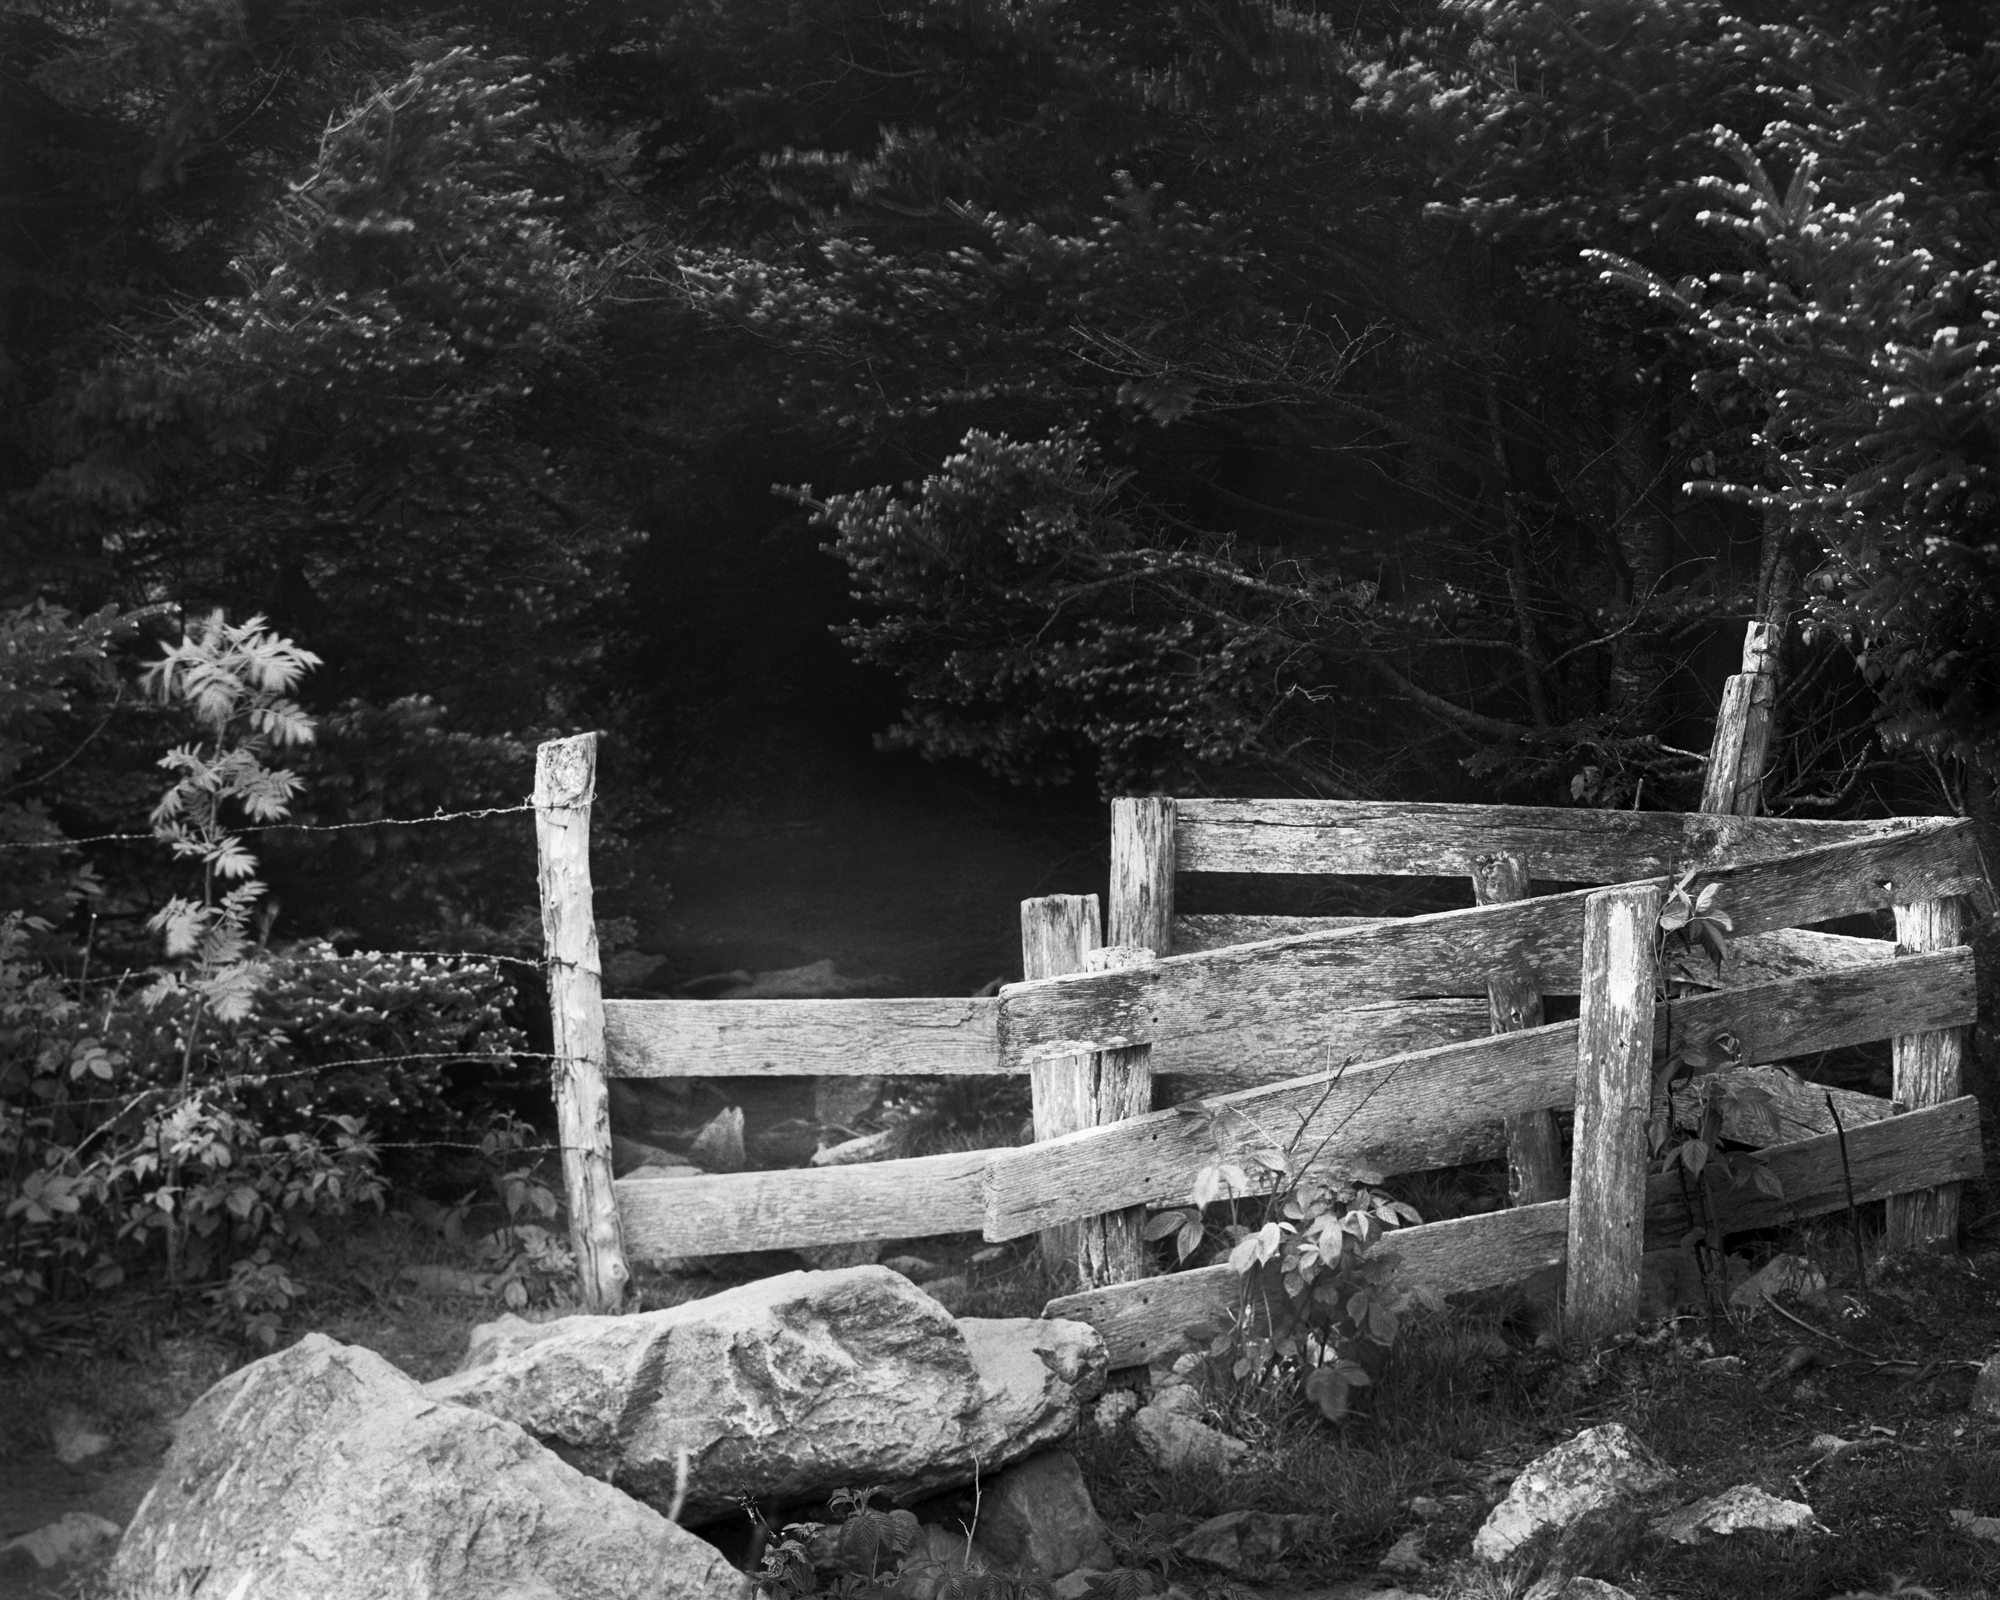 Wooden Stile at 499N, Appalachian Trail, Virginia. 2020